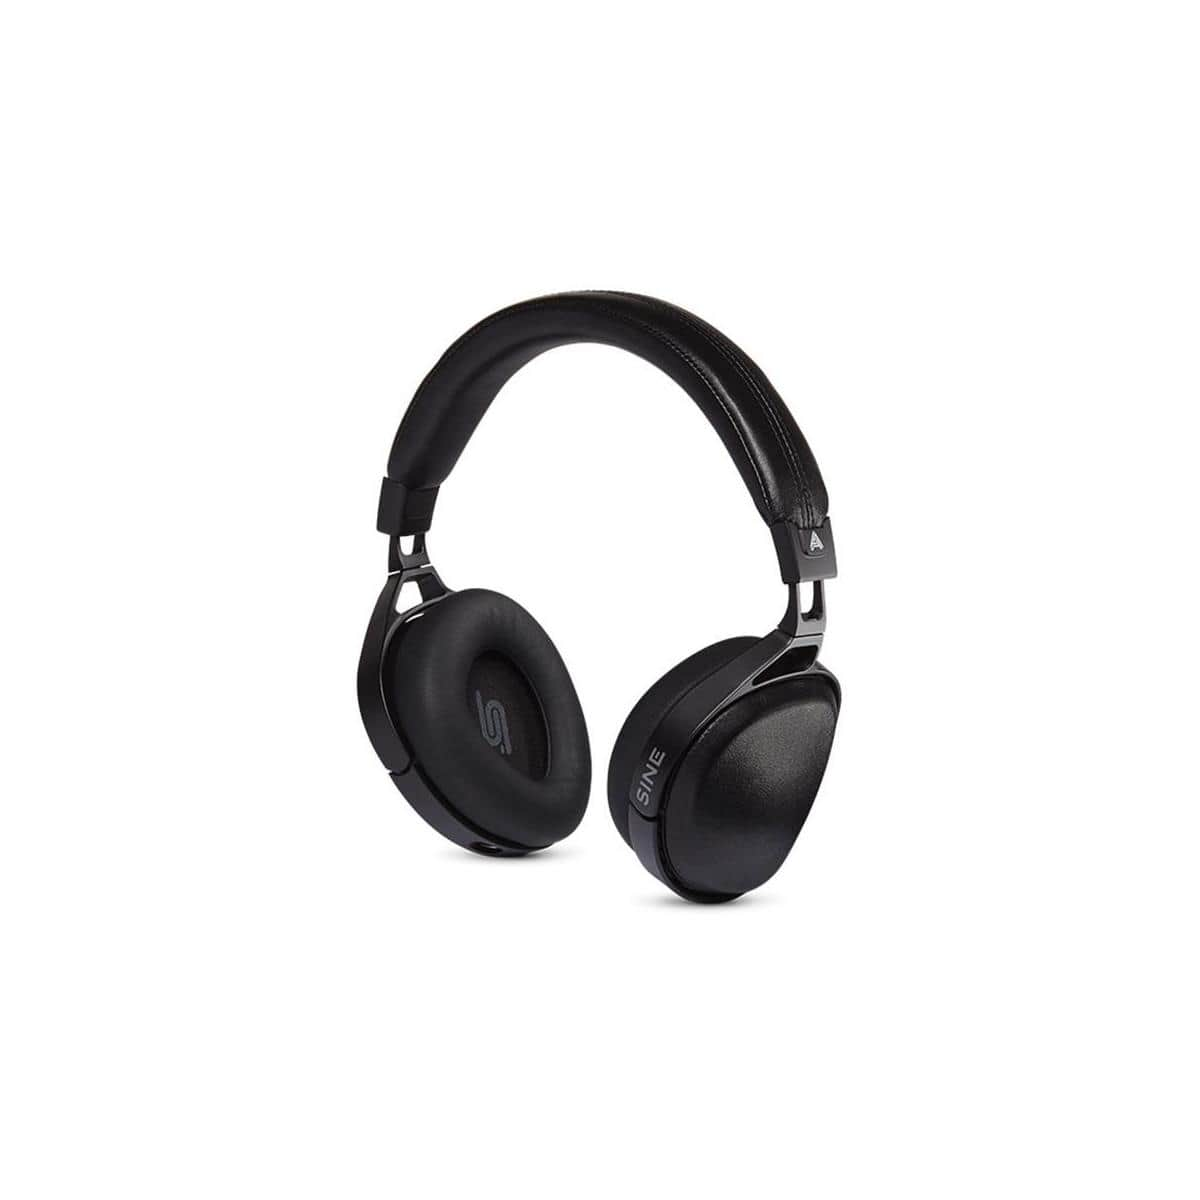 Audeze SINE On-Ear Headphones w/ Microphone and Cipher Lightning Cable $379 + free shipping